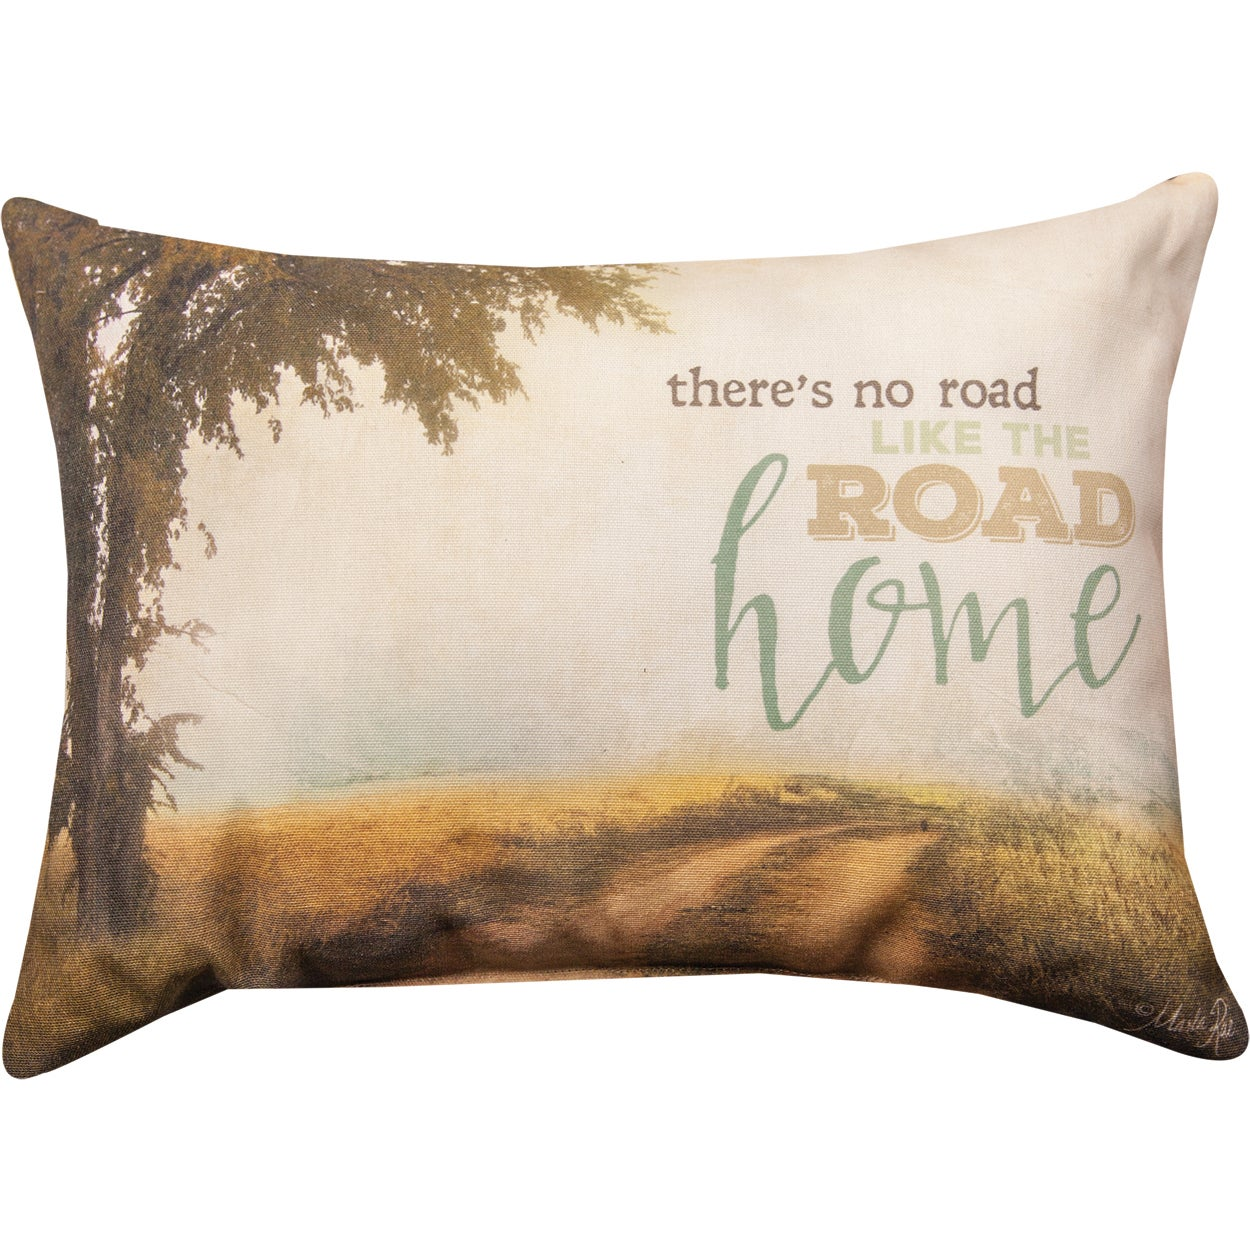 Manual Woodworkers There S No Road Like The Road Home Multicolored Cotton Blend Throw Pillow Overstock 16879212